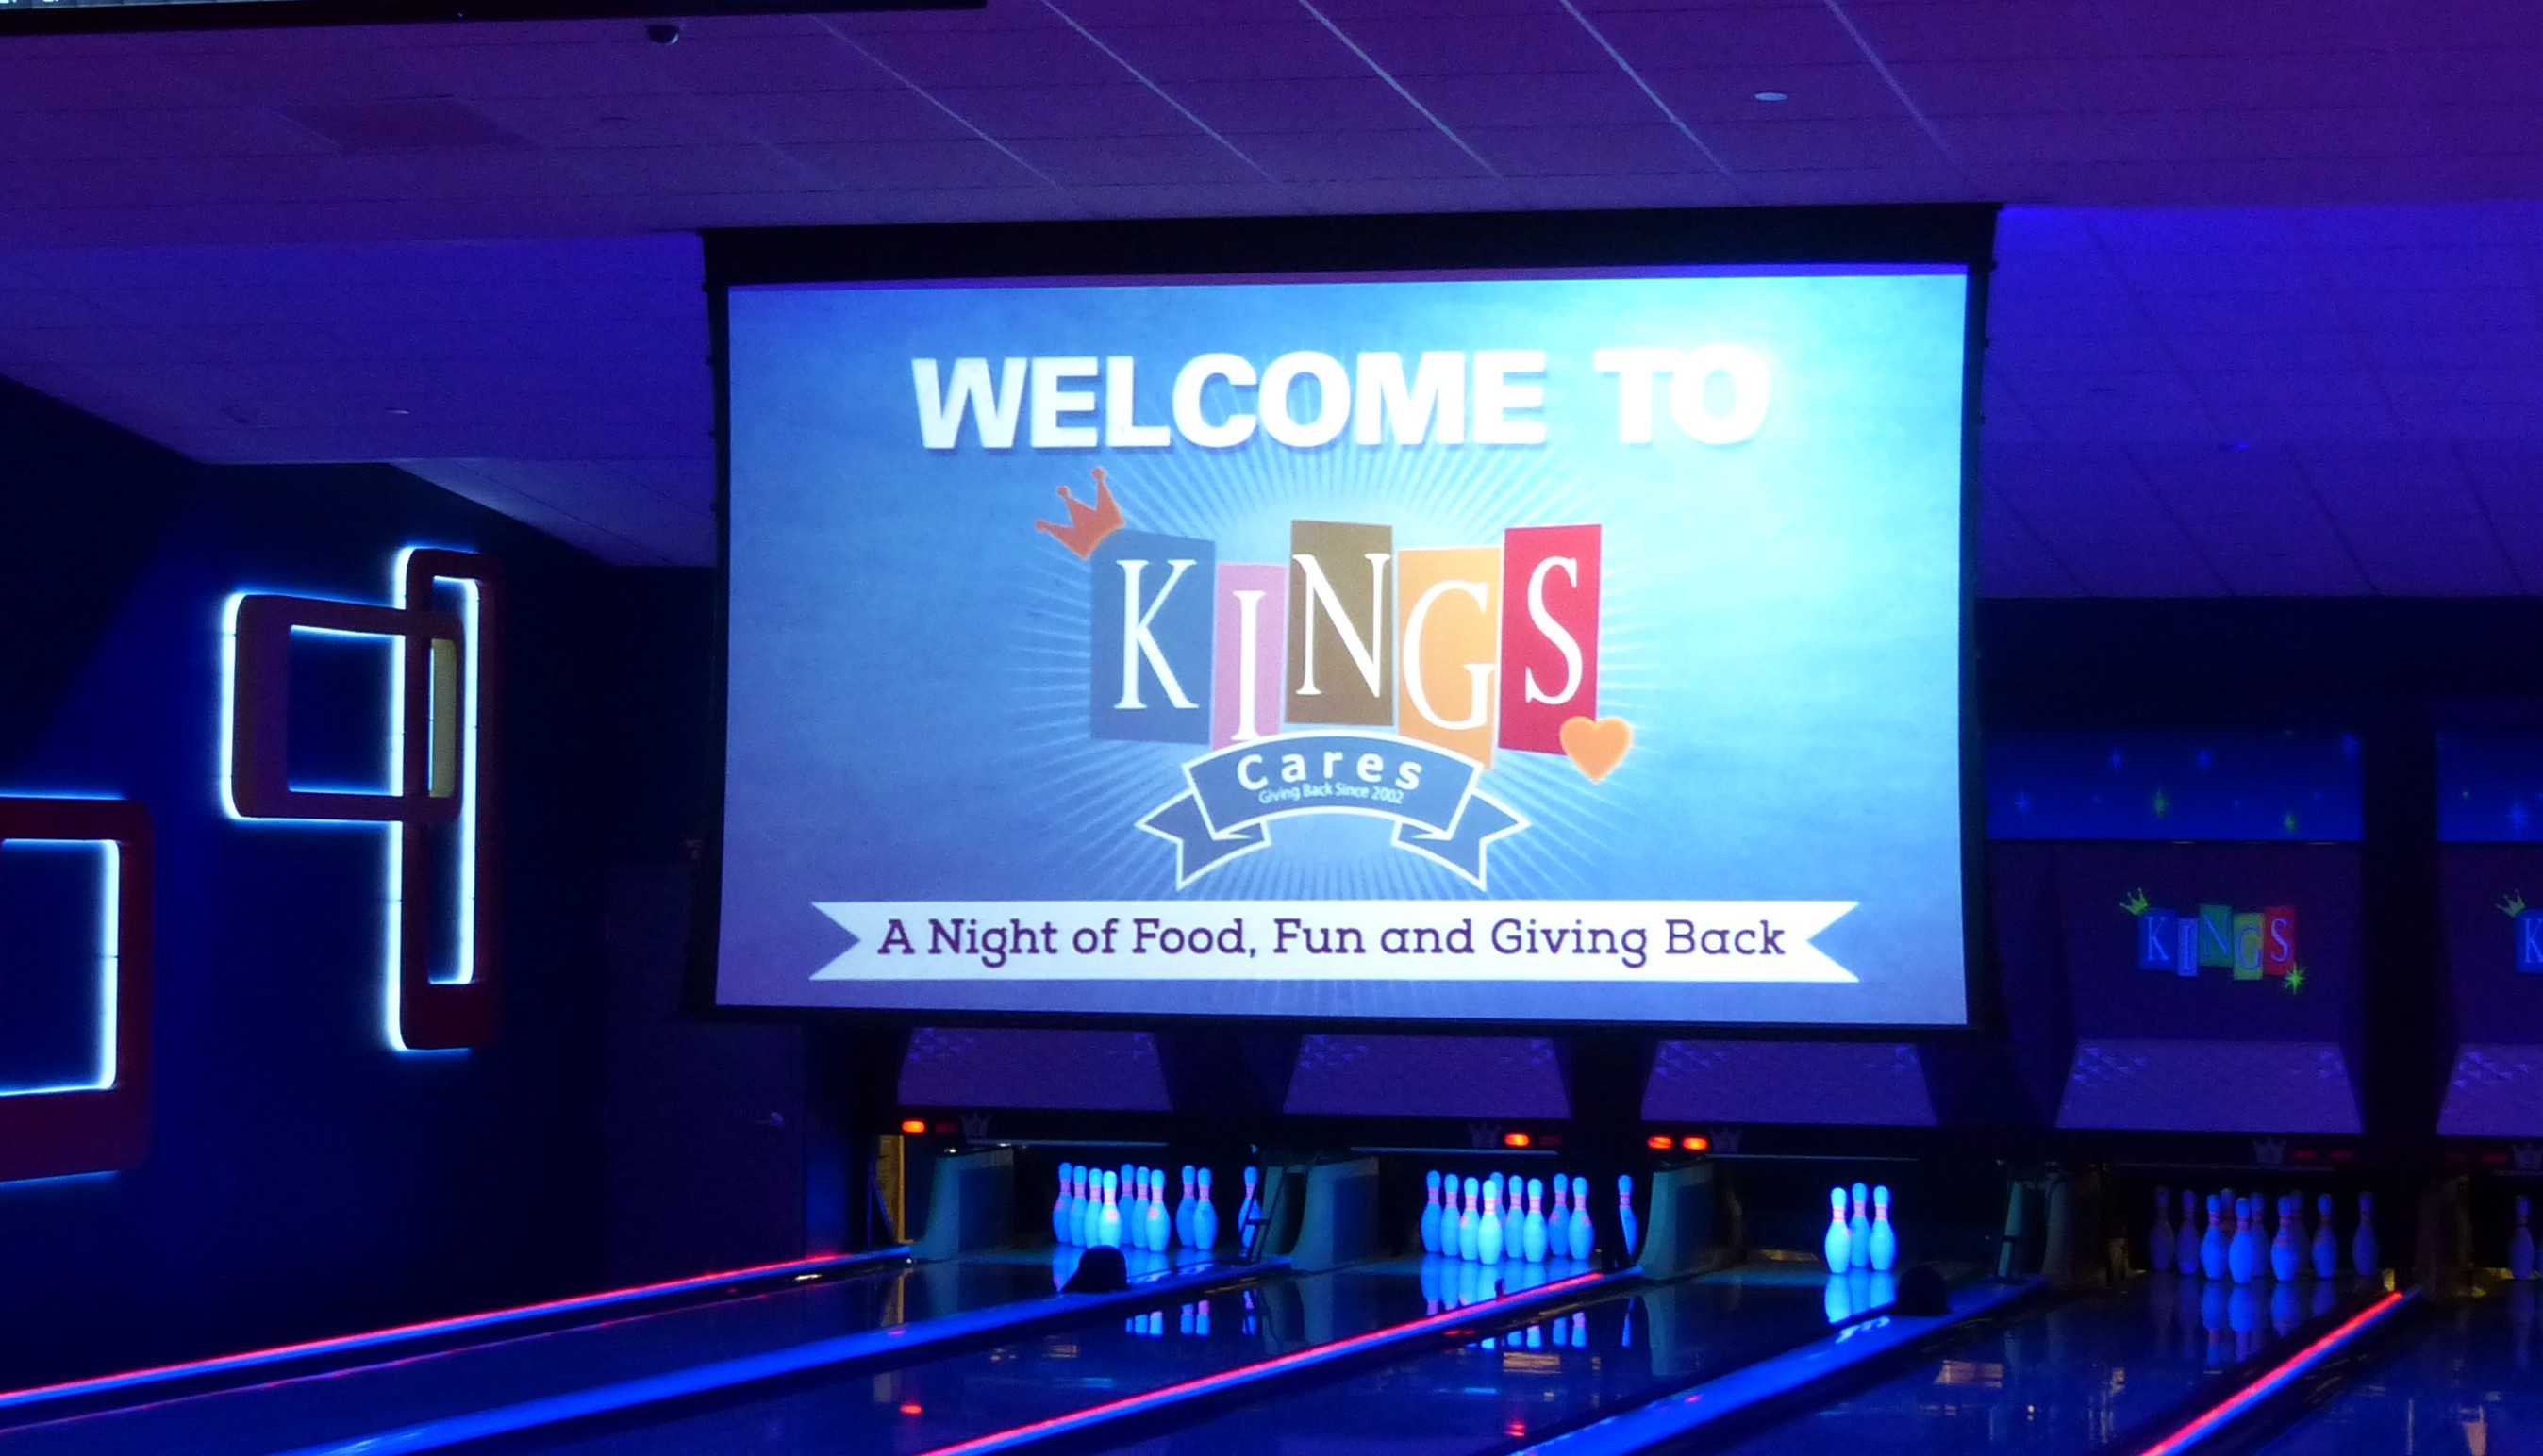 Kings celebrates a Night of Fun and Giving Back